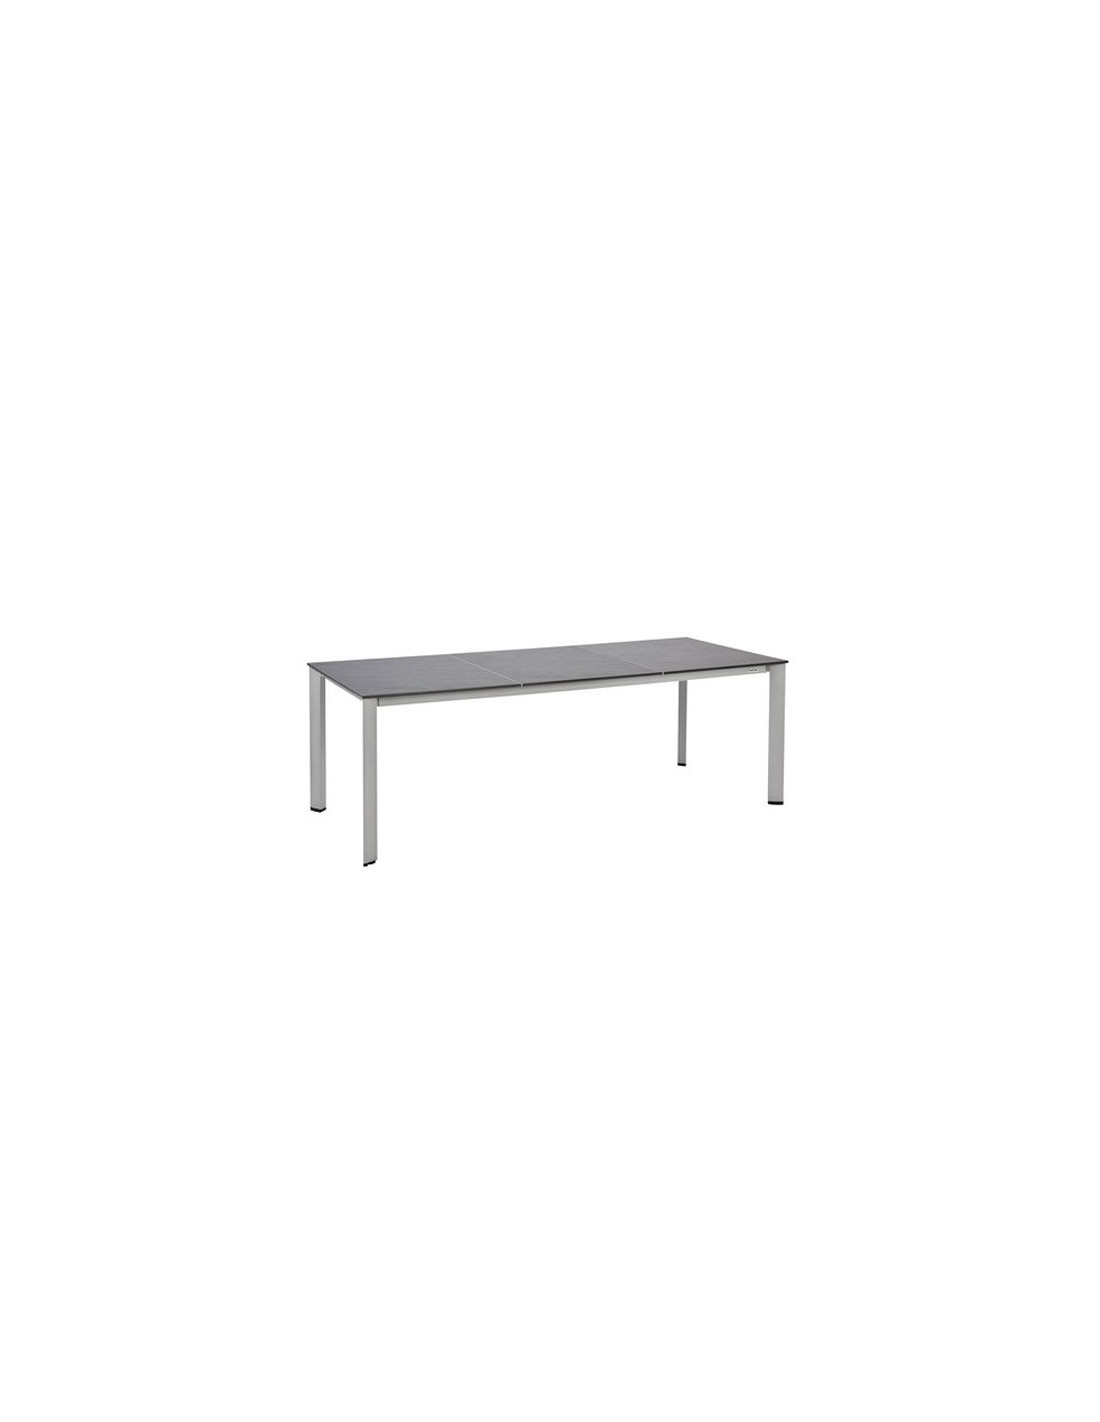 table de jardin aluminium r sine aspect ardoise mod le loft. Black Bedroom Furniture Sets. Home Design Ideas